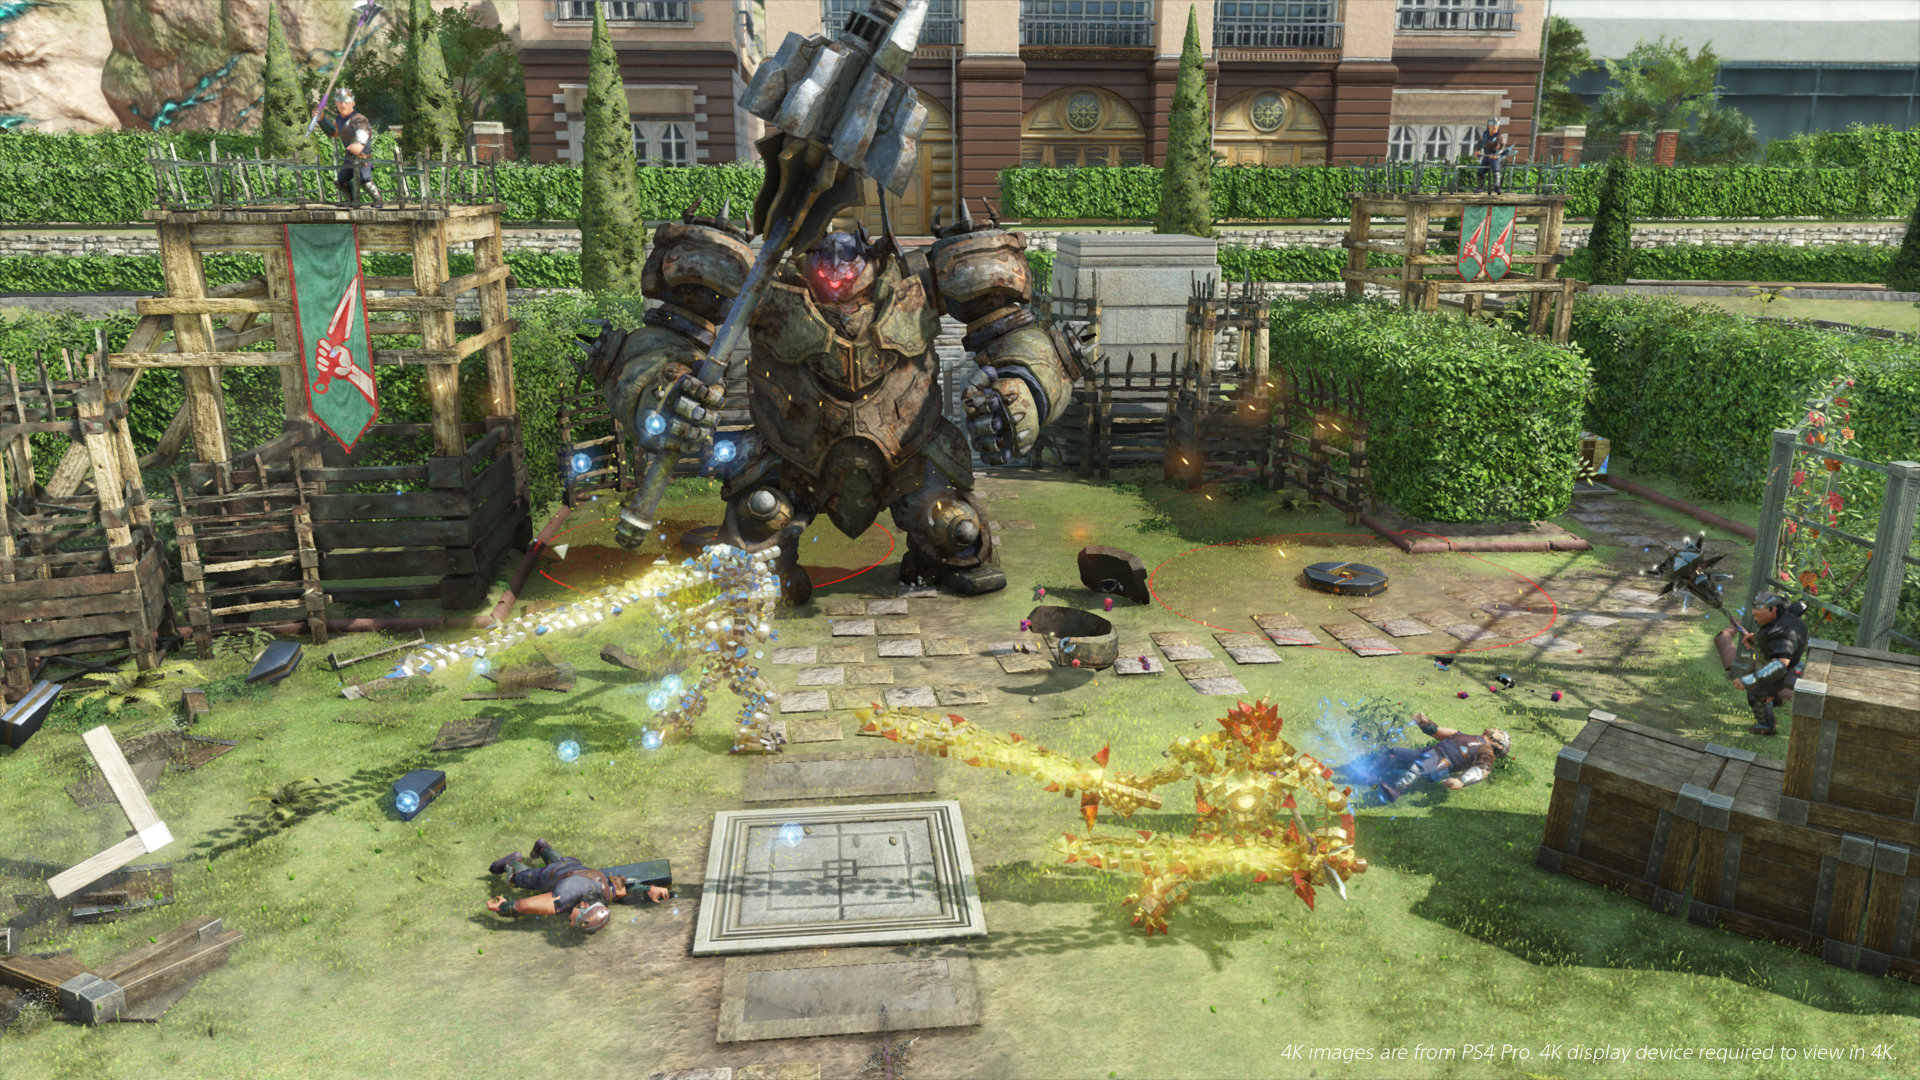 Knack 2 PlayStation 4 SCE Japan Studio